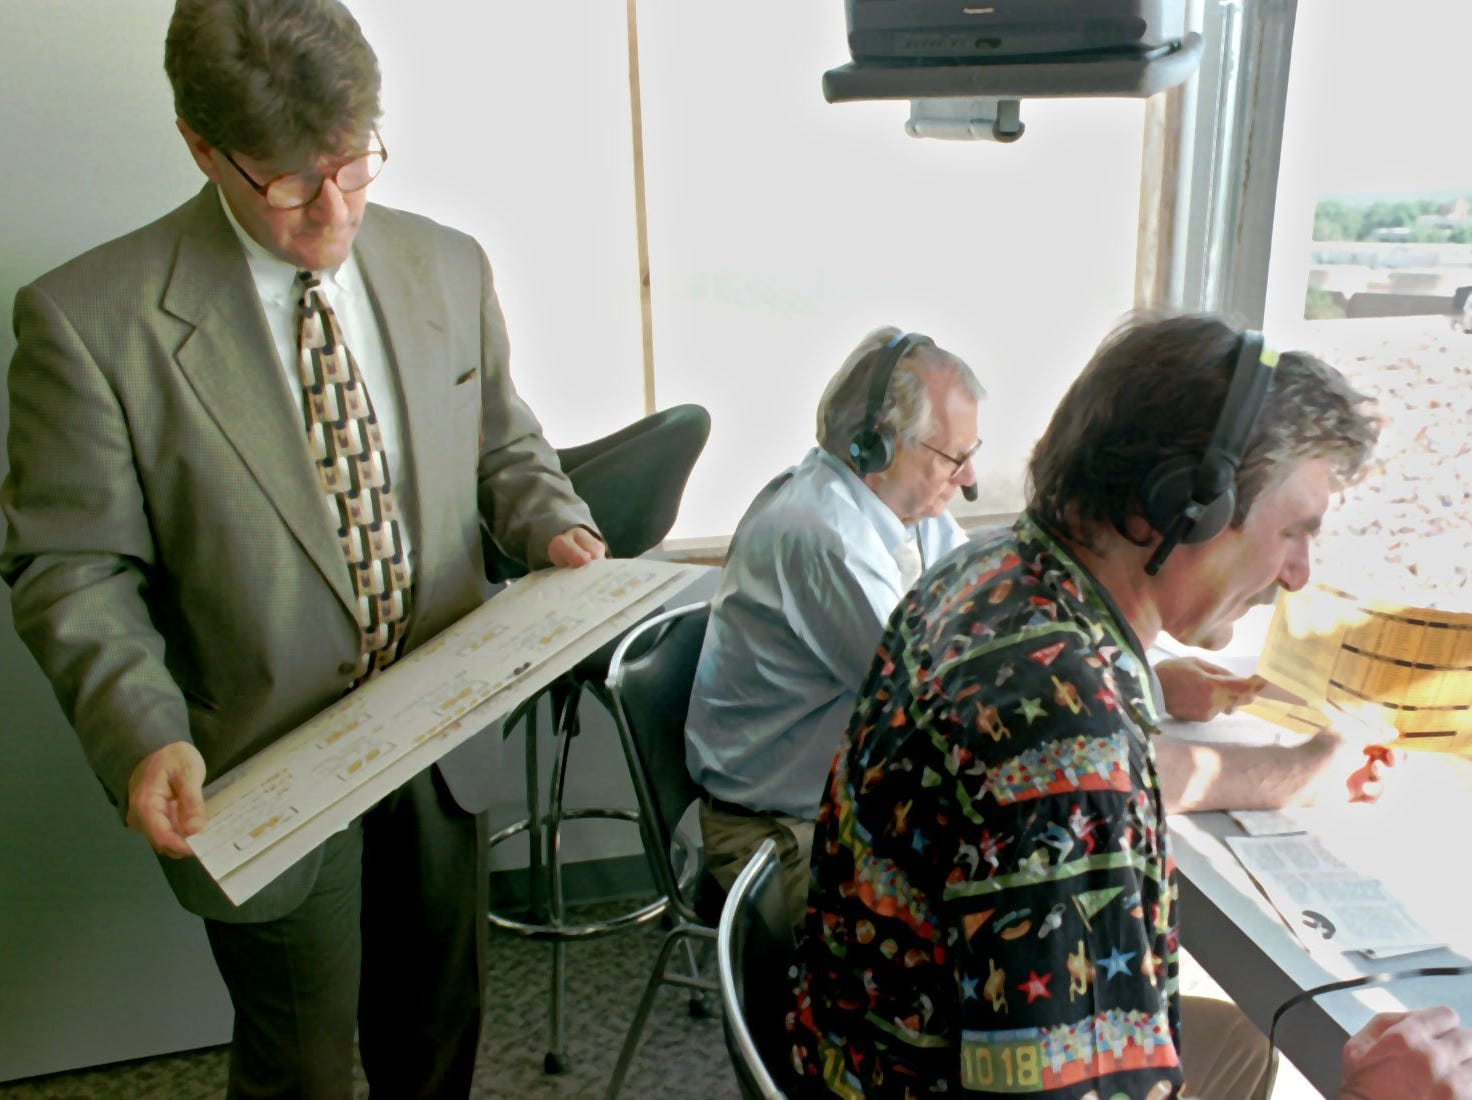 From 1997: It was Jim Zabel, background, who asked Ed Podolak, left, to become a commentator for Iowa football in 1982.